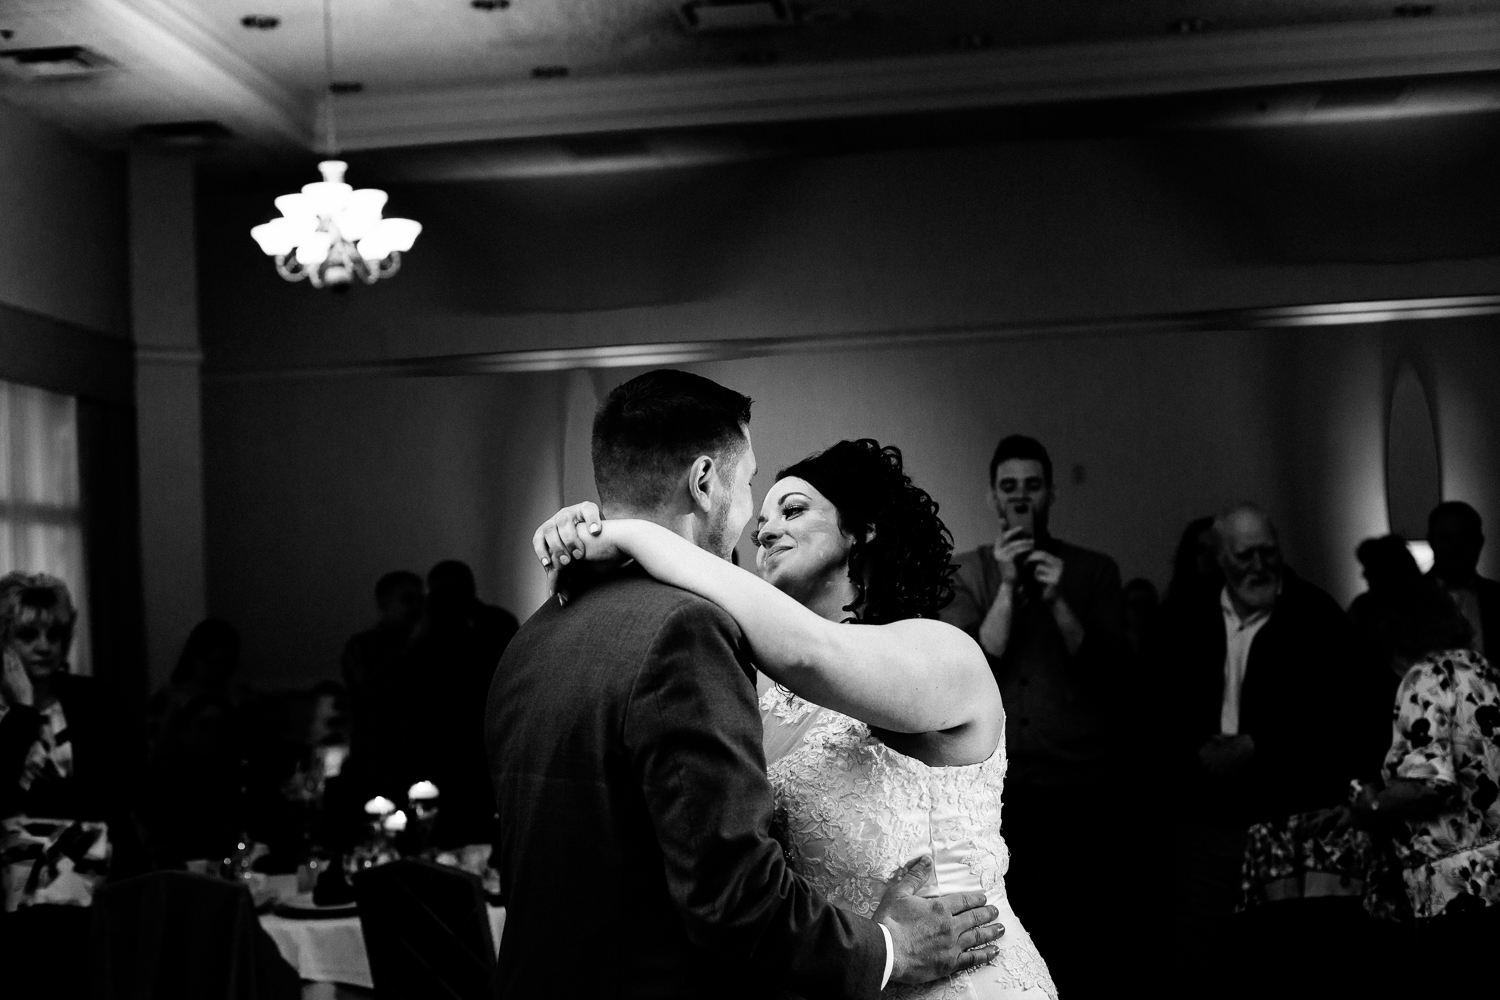 A black and white image of the first dance at a wedding. The bride is smiling at the groom.